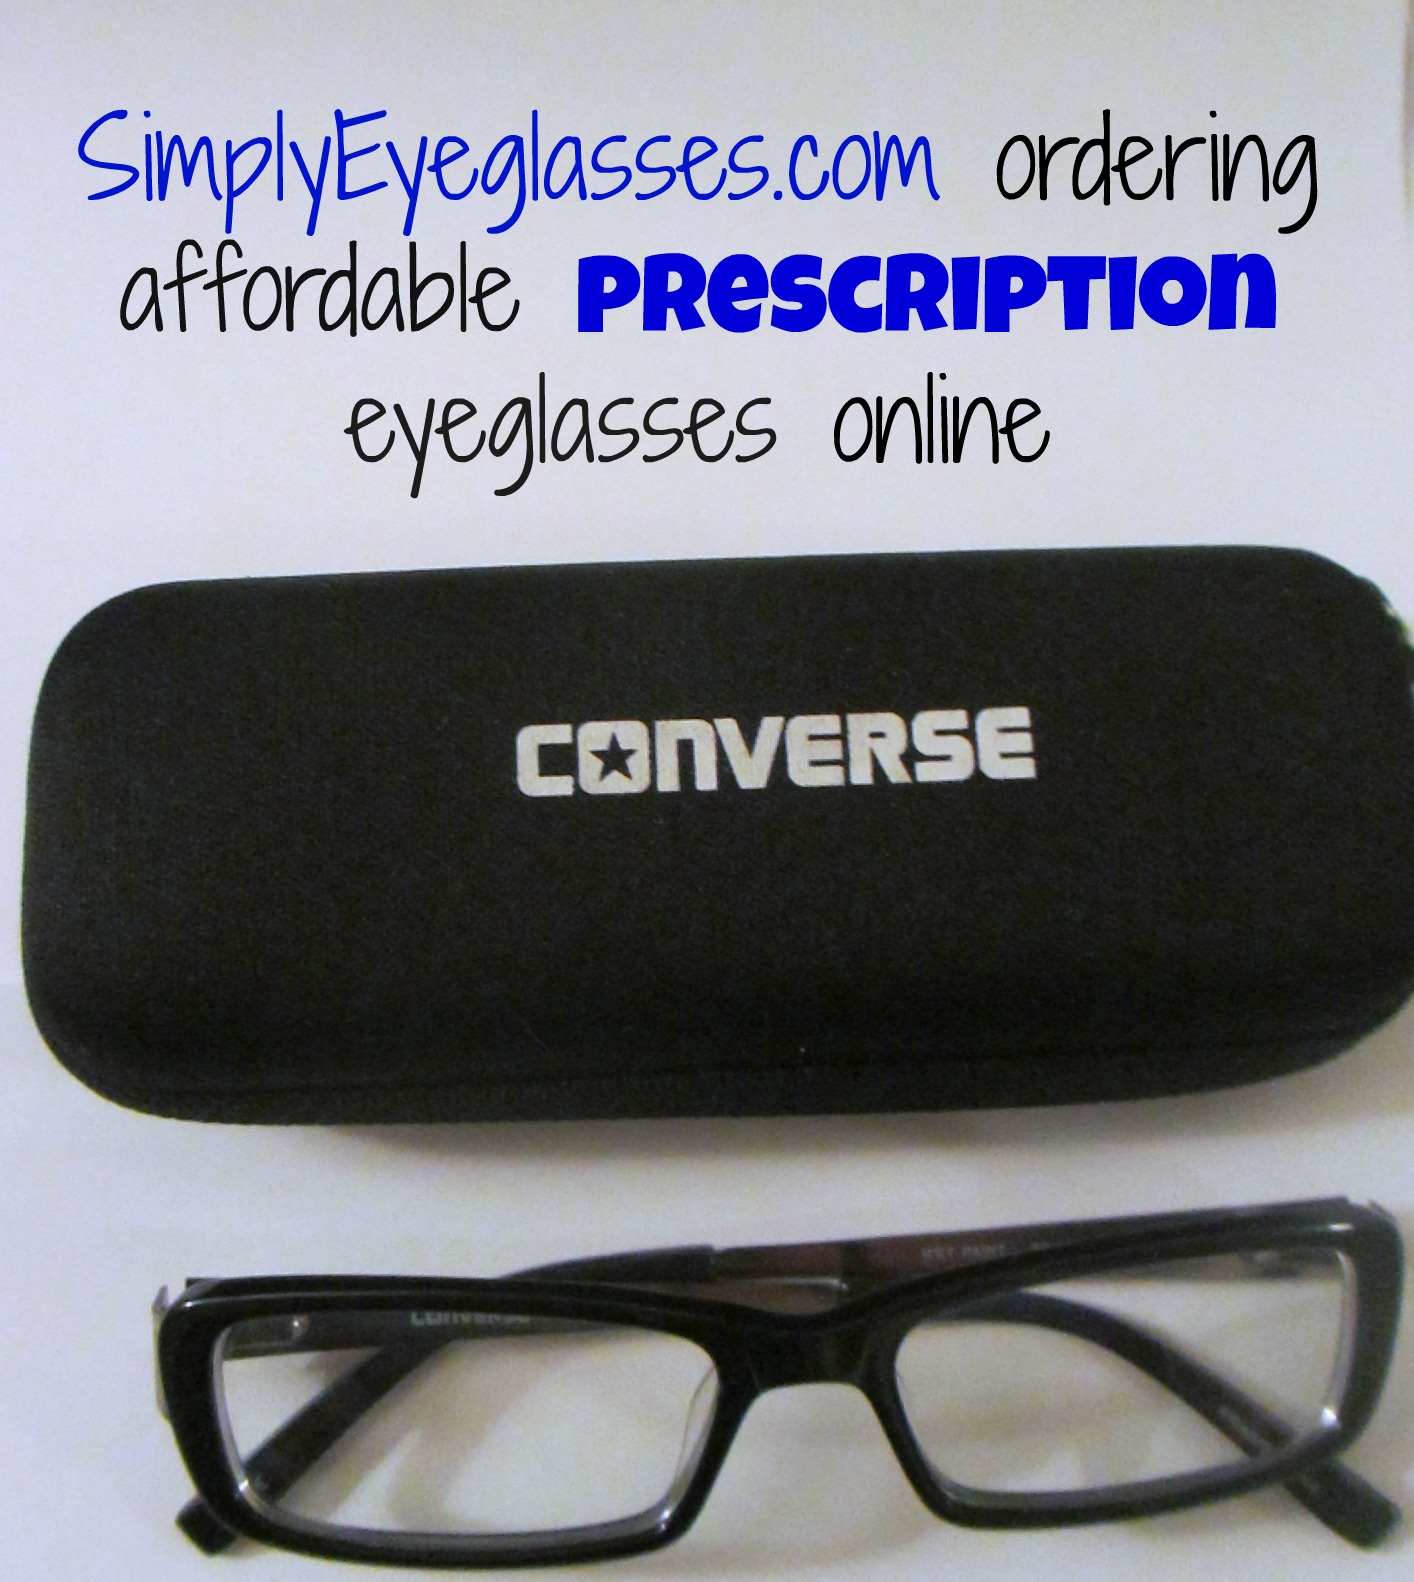 ordering eyeglasses online reviews